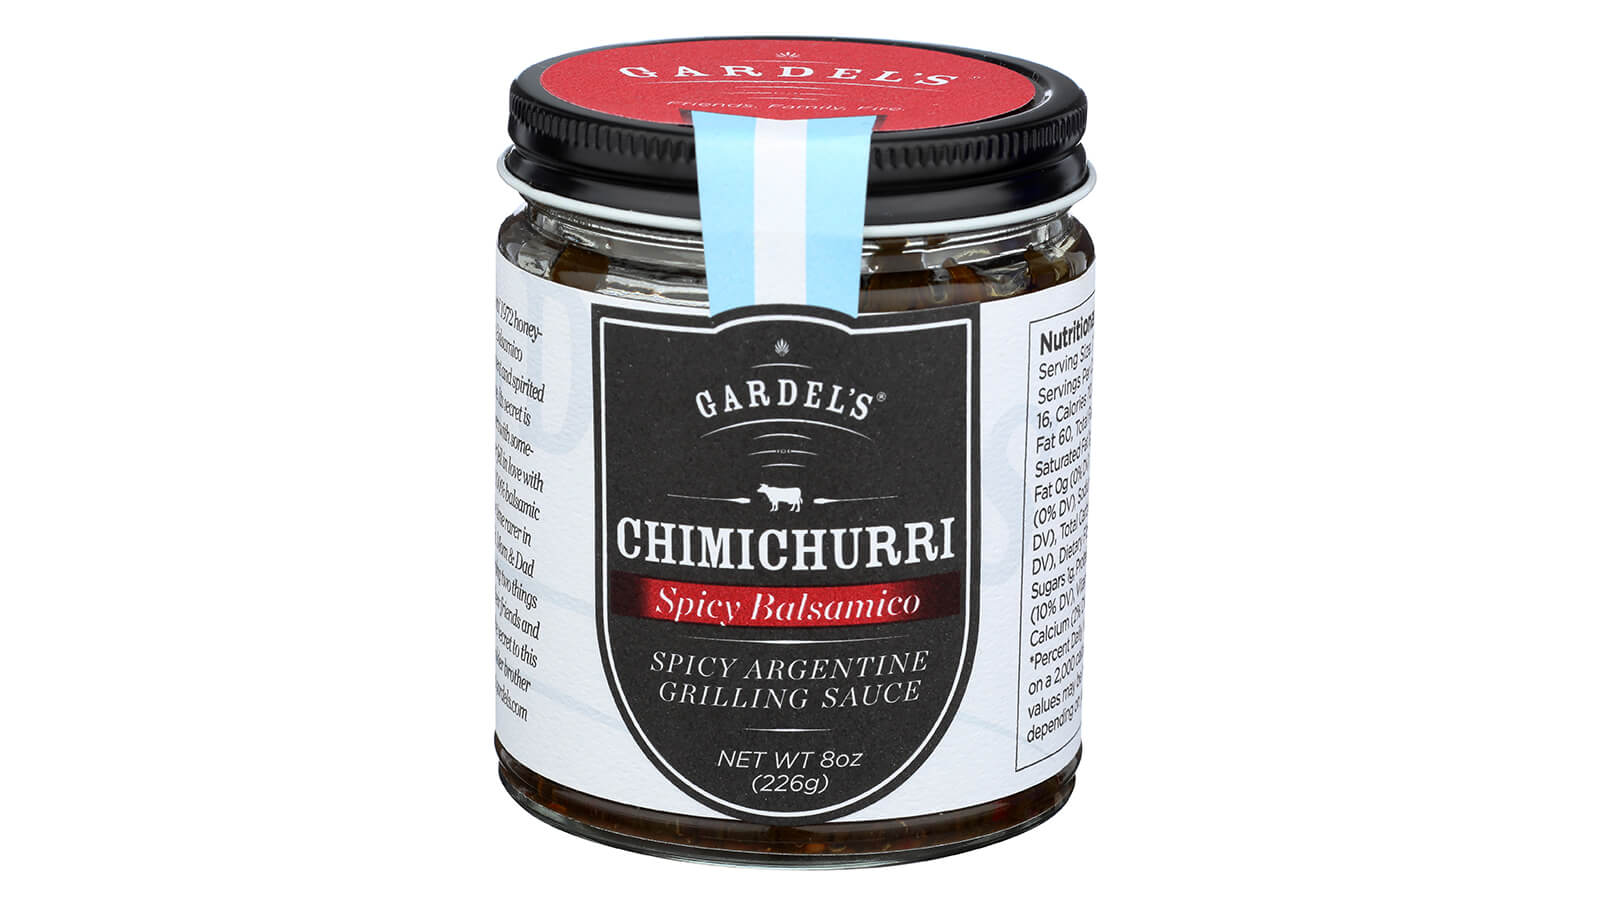 Gardel's Spicy Balsamico Chimichurri Sauce